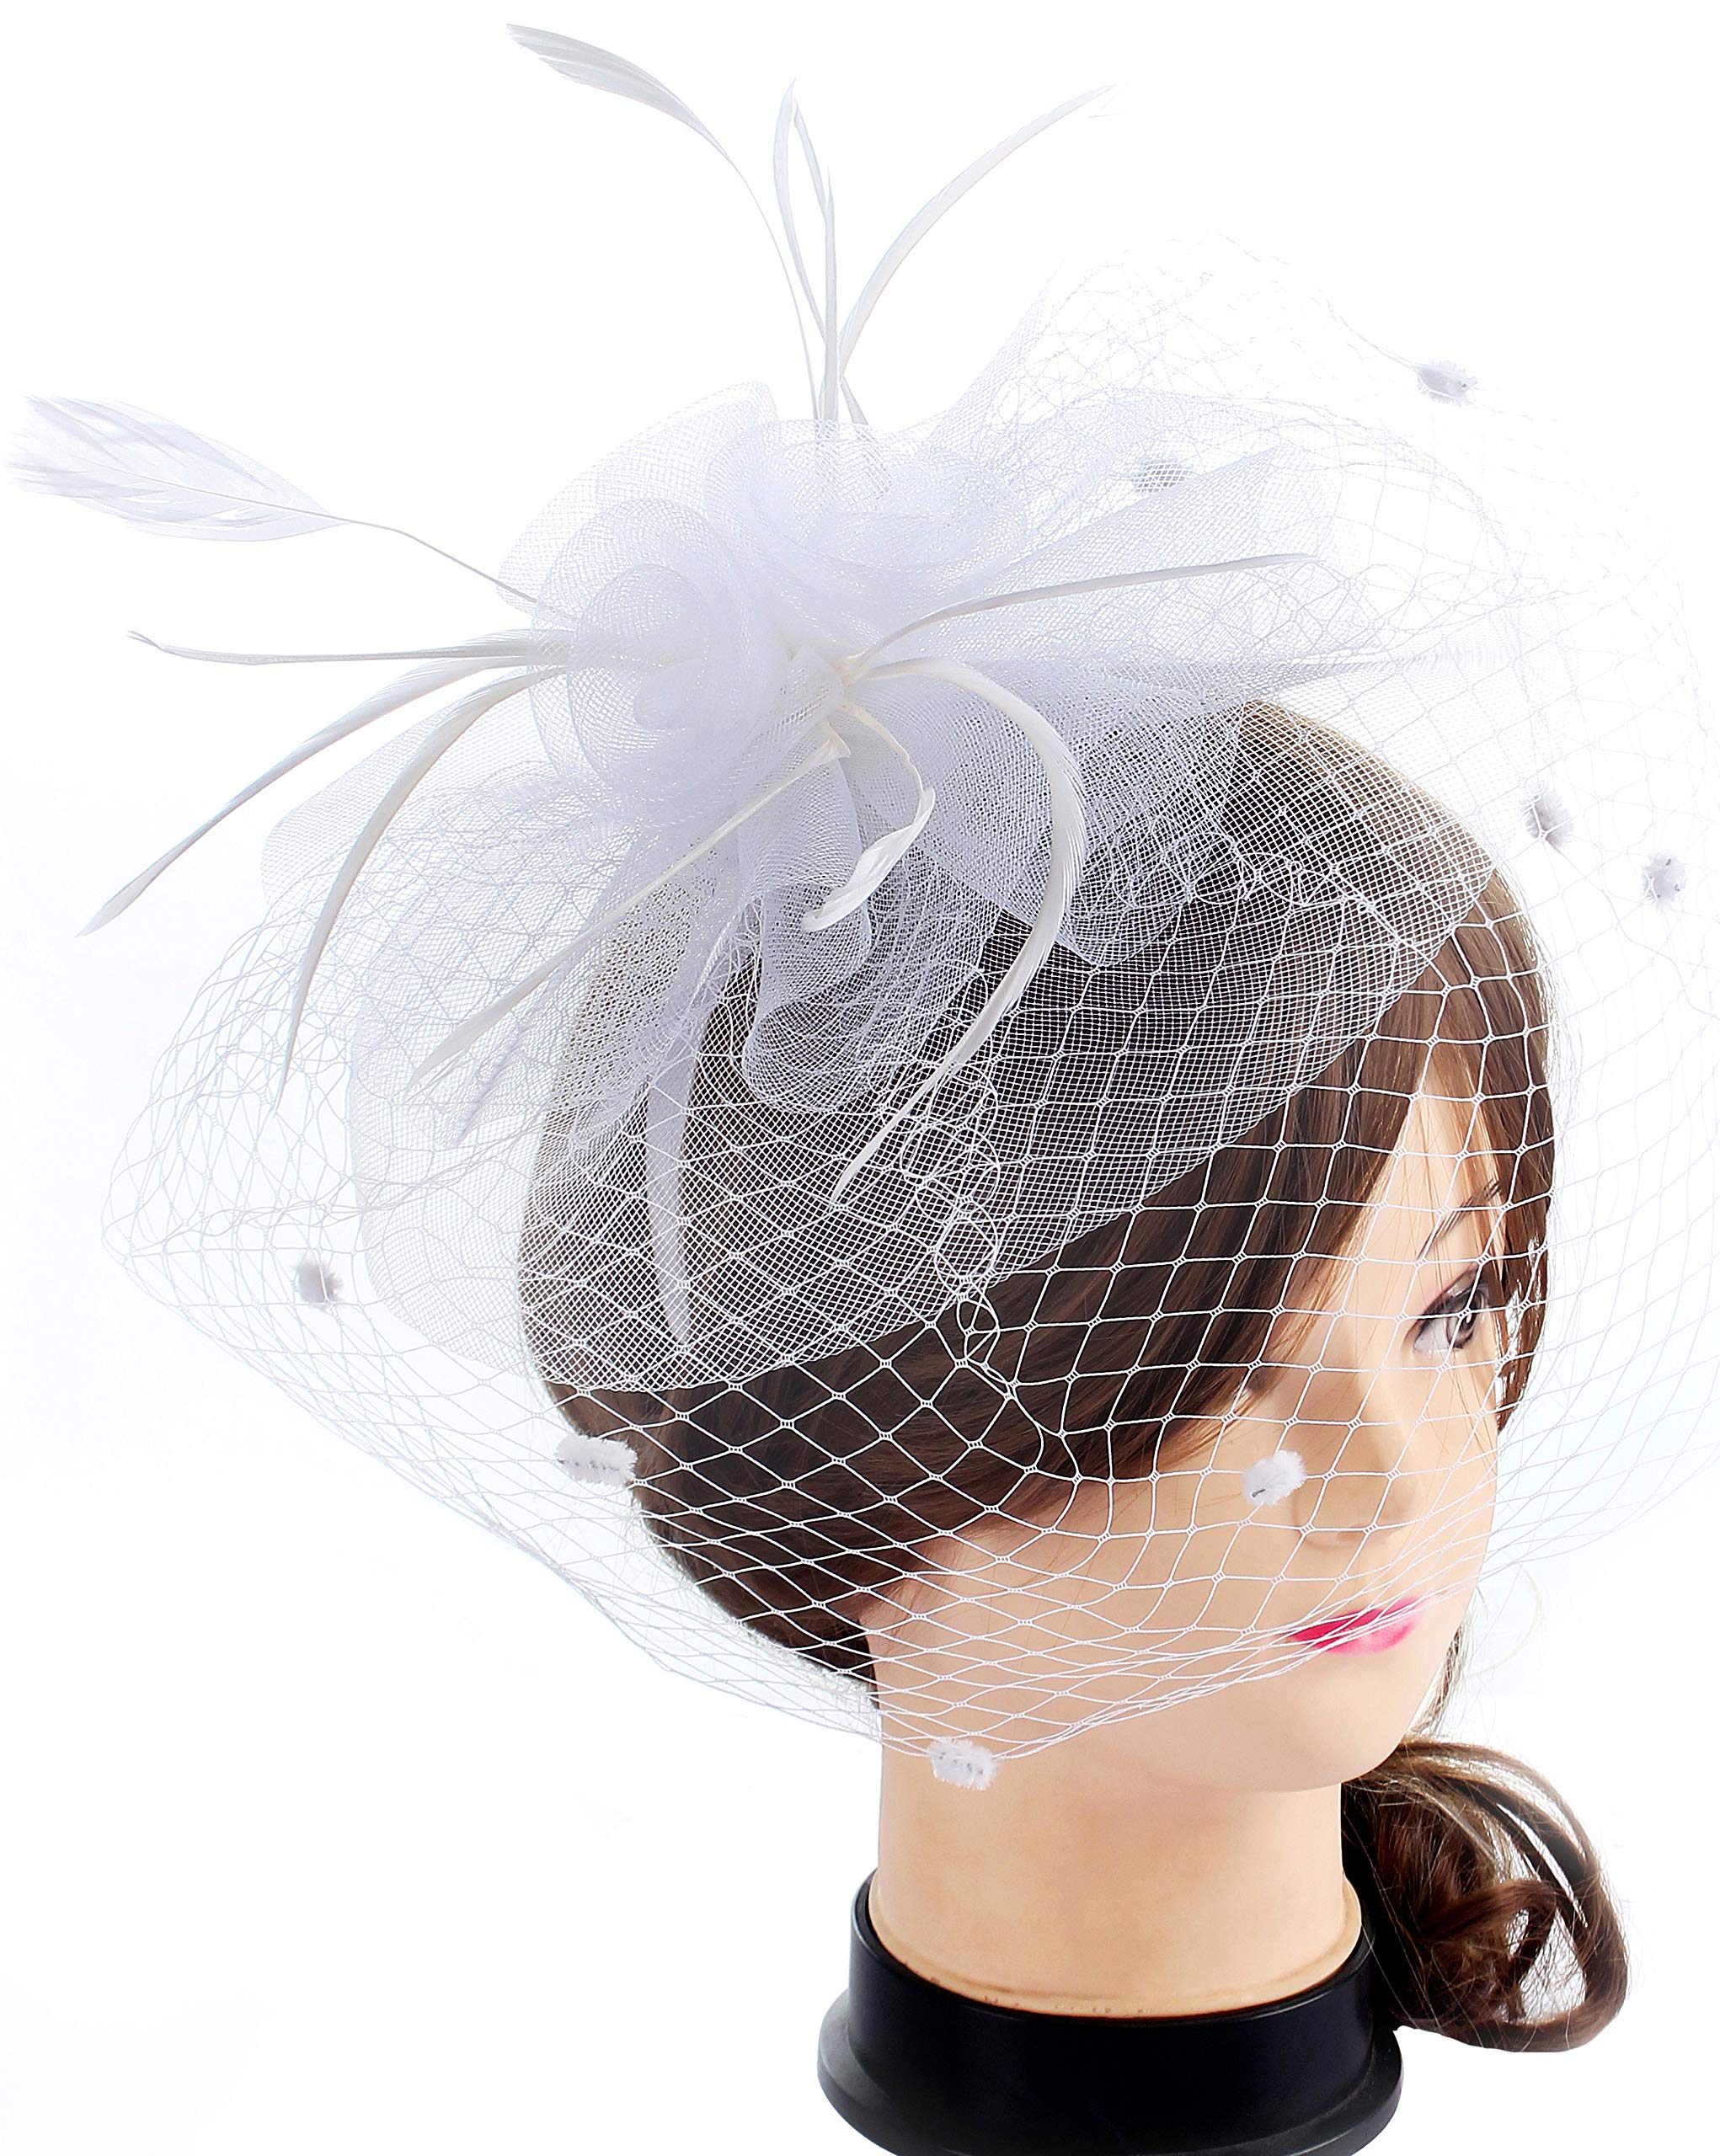 Myjoyday Fascinators Hat for Women Tea Party Headband Kentucky Derby Wedding Cocktail Flower Mesh Feathers Hair Clip (White)